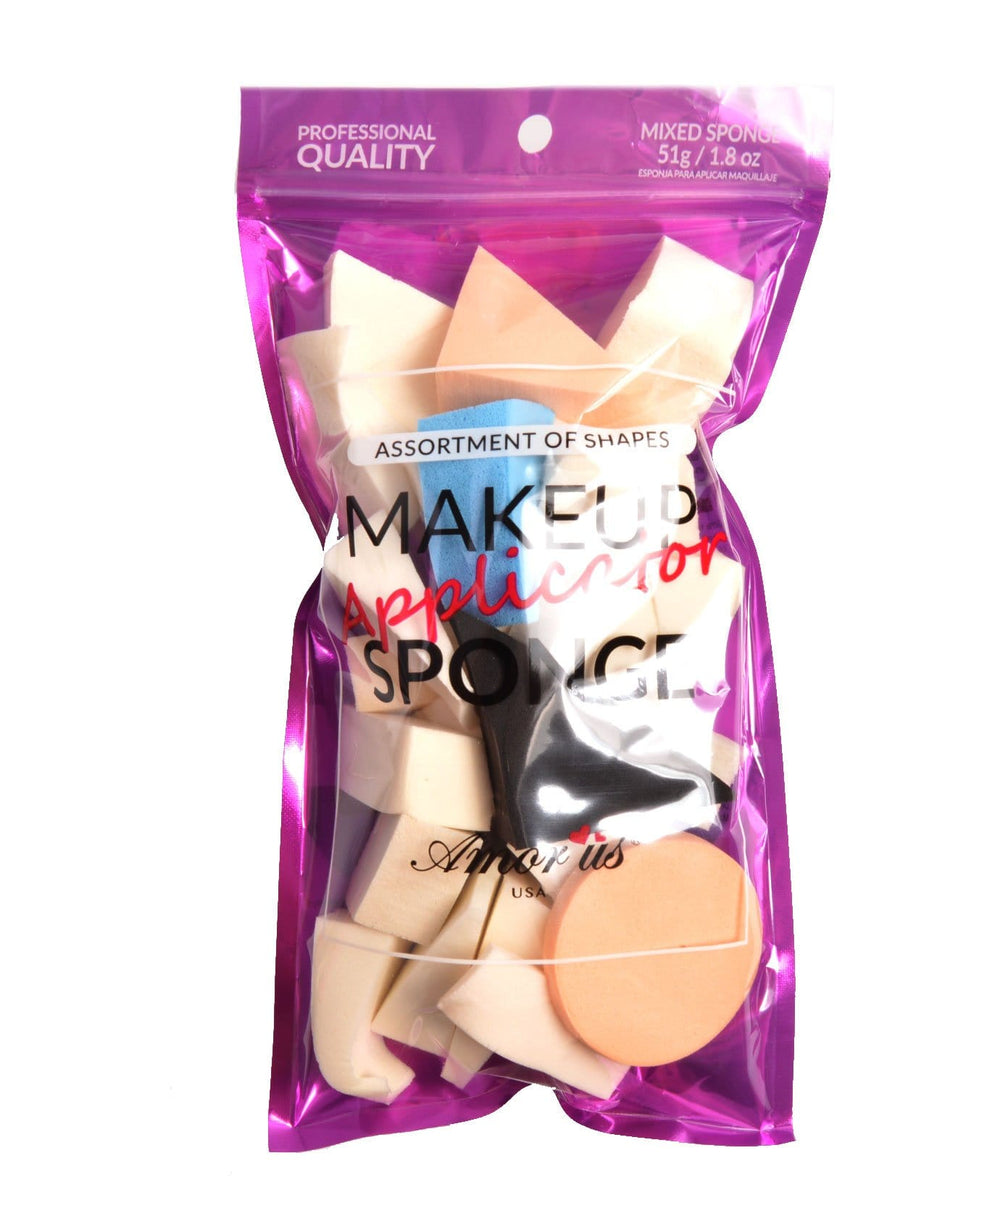 Amor Us Mixed Cosmetic Sponges